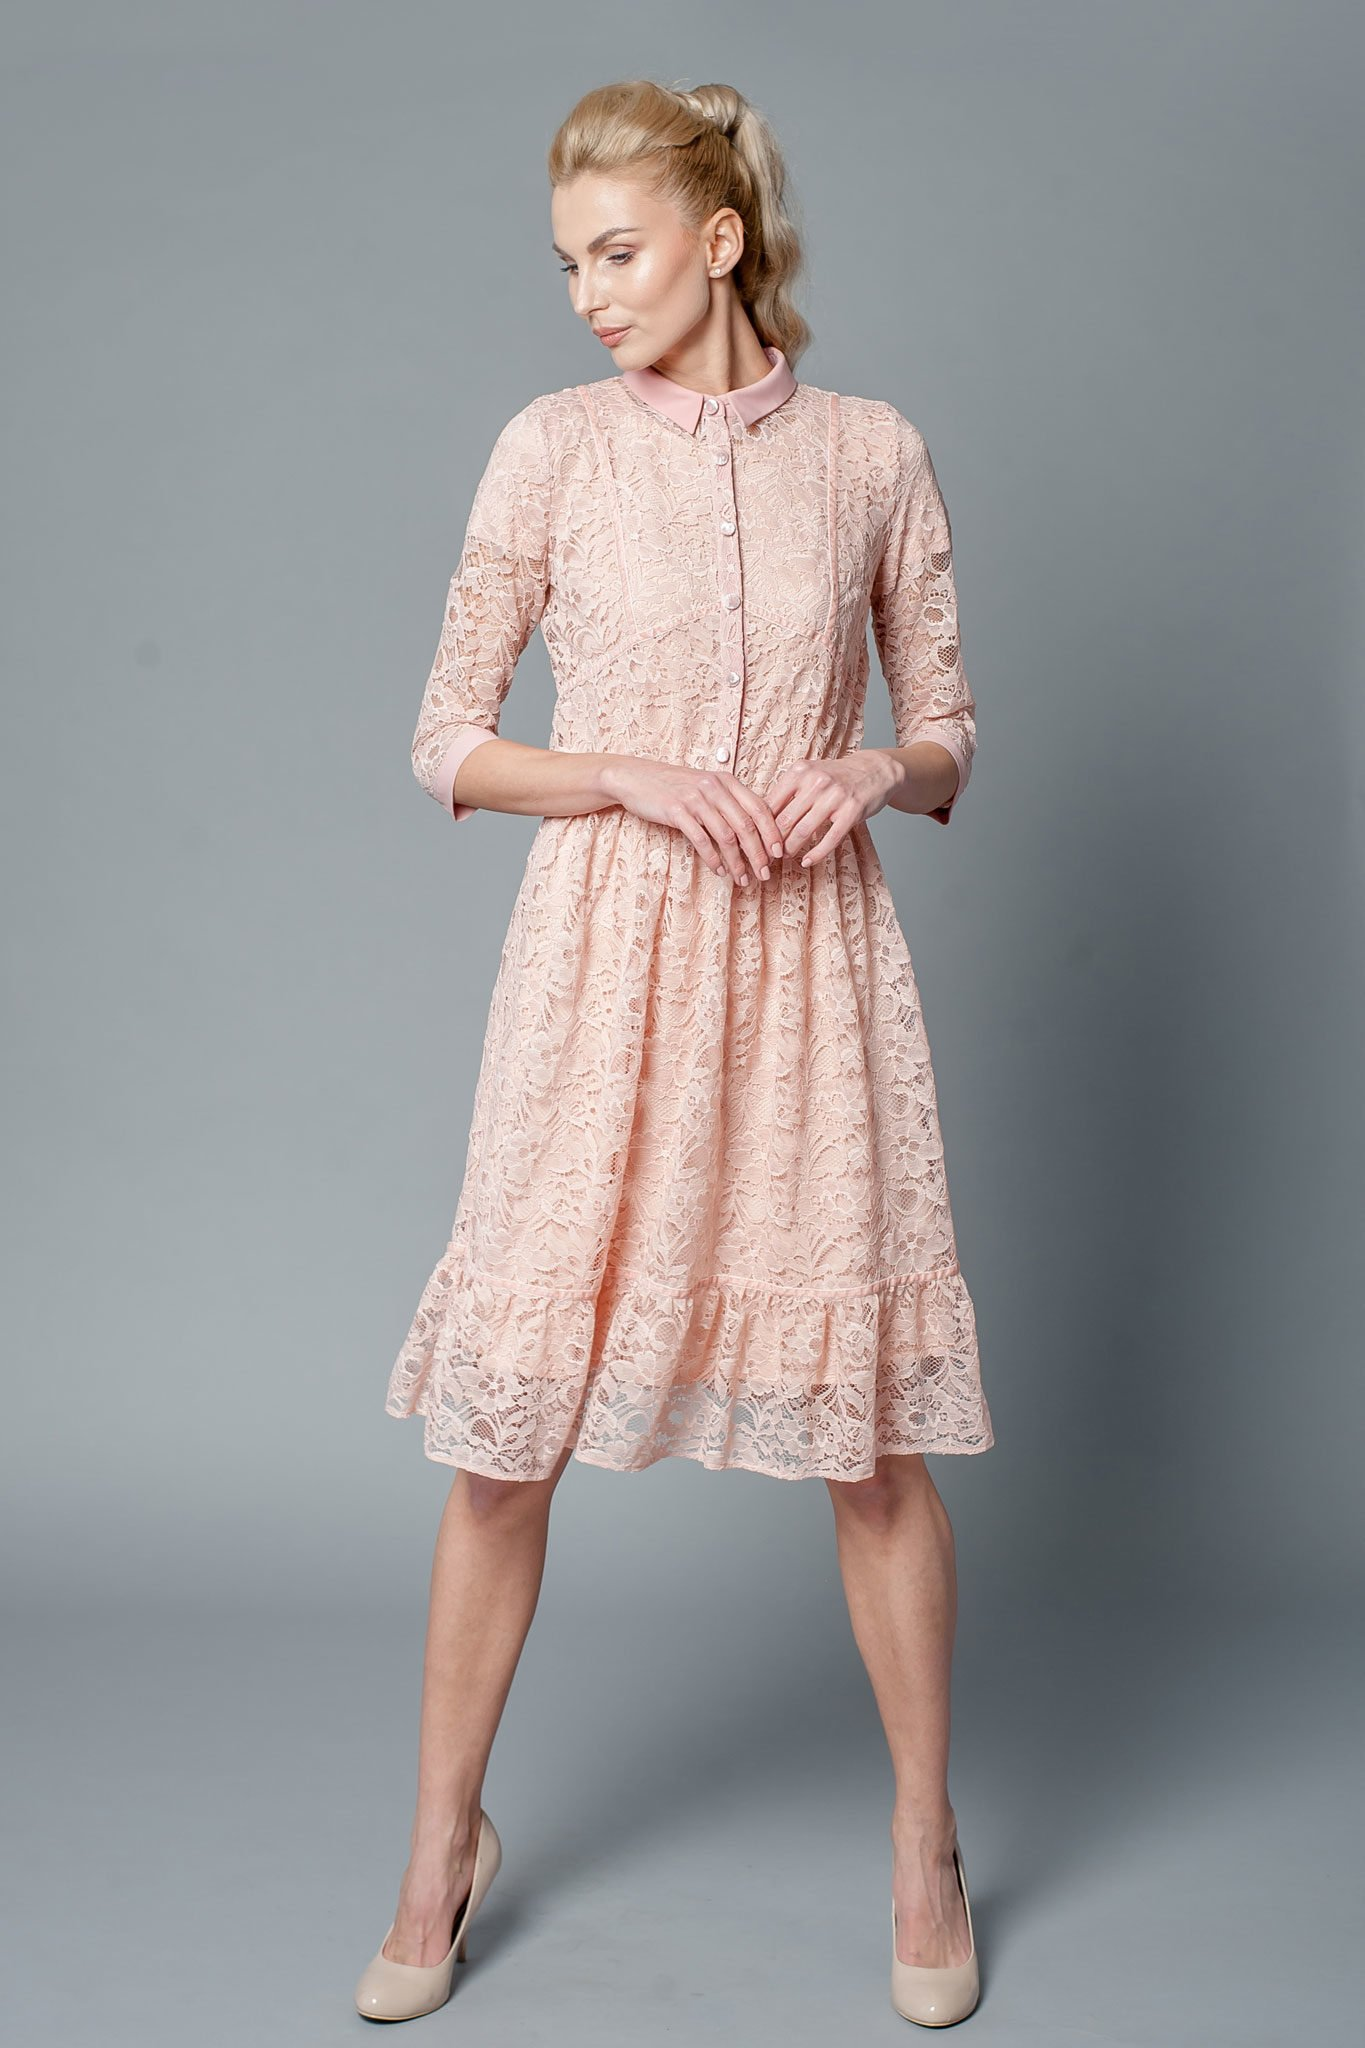 Mother of the bride dress with chiffon collar and cuffs